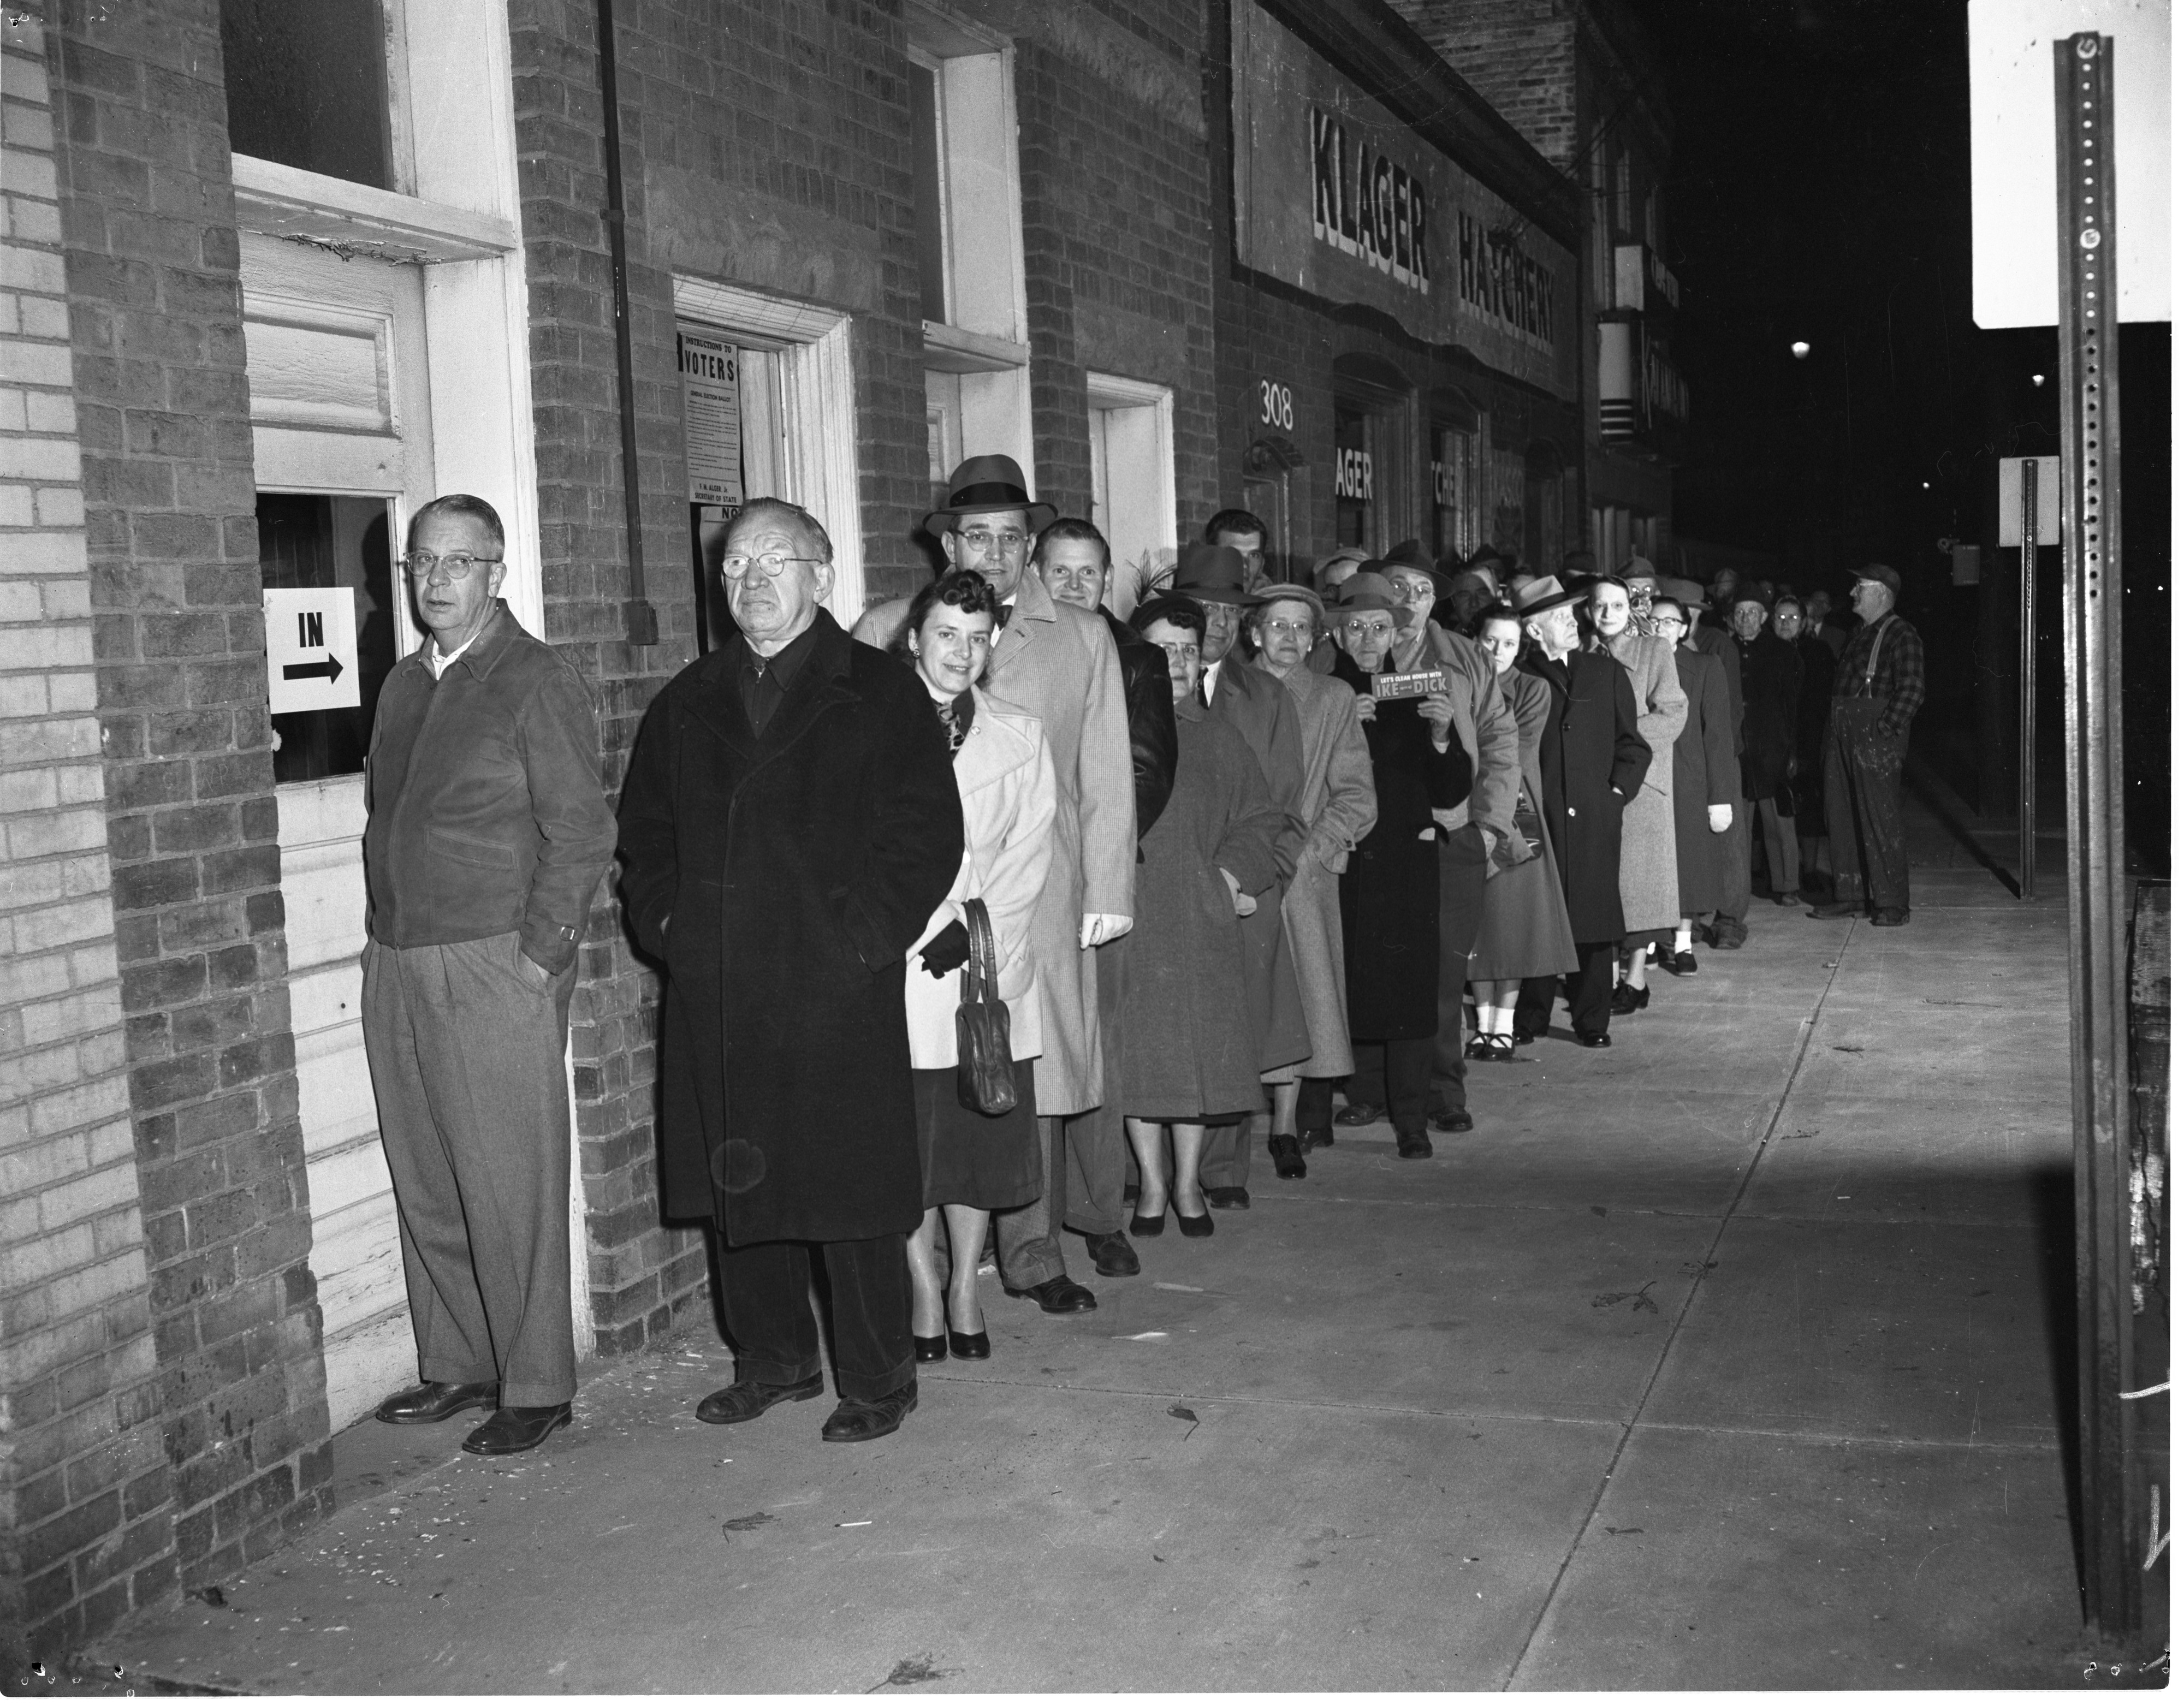 Ann Arbor Second Ward Voters Lined Up Before Polls Open For The 1952 Presidential Election - November 4, 1952 image